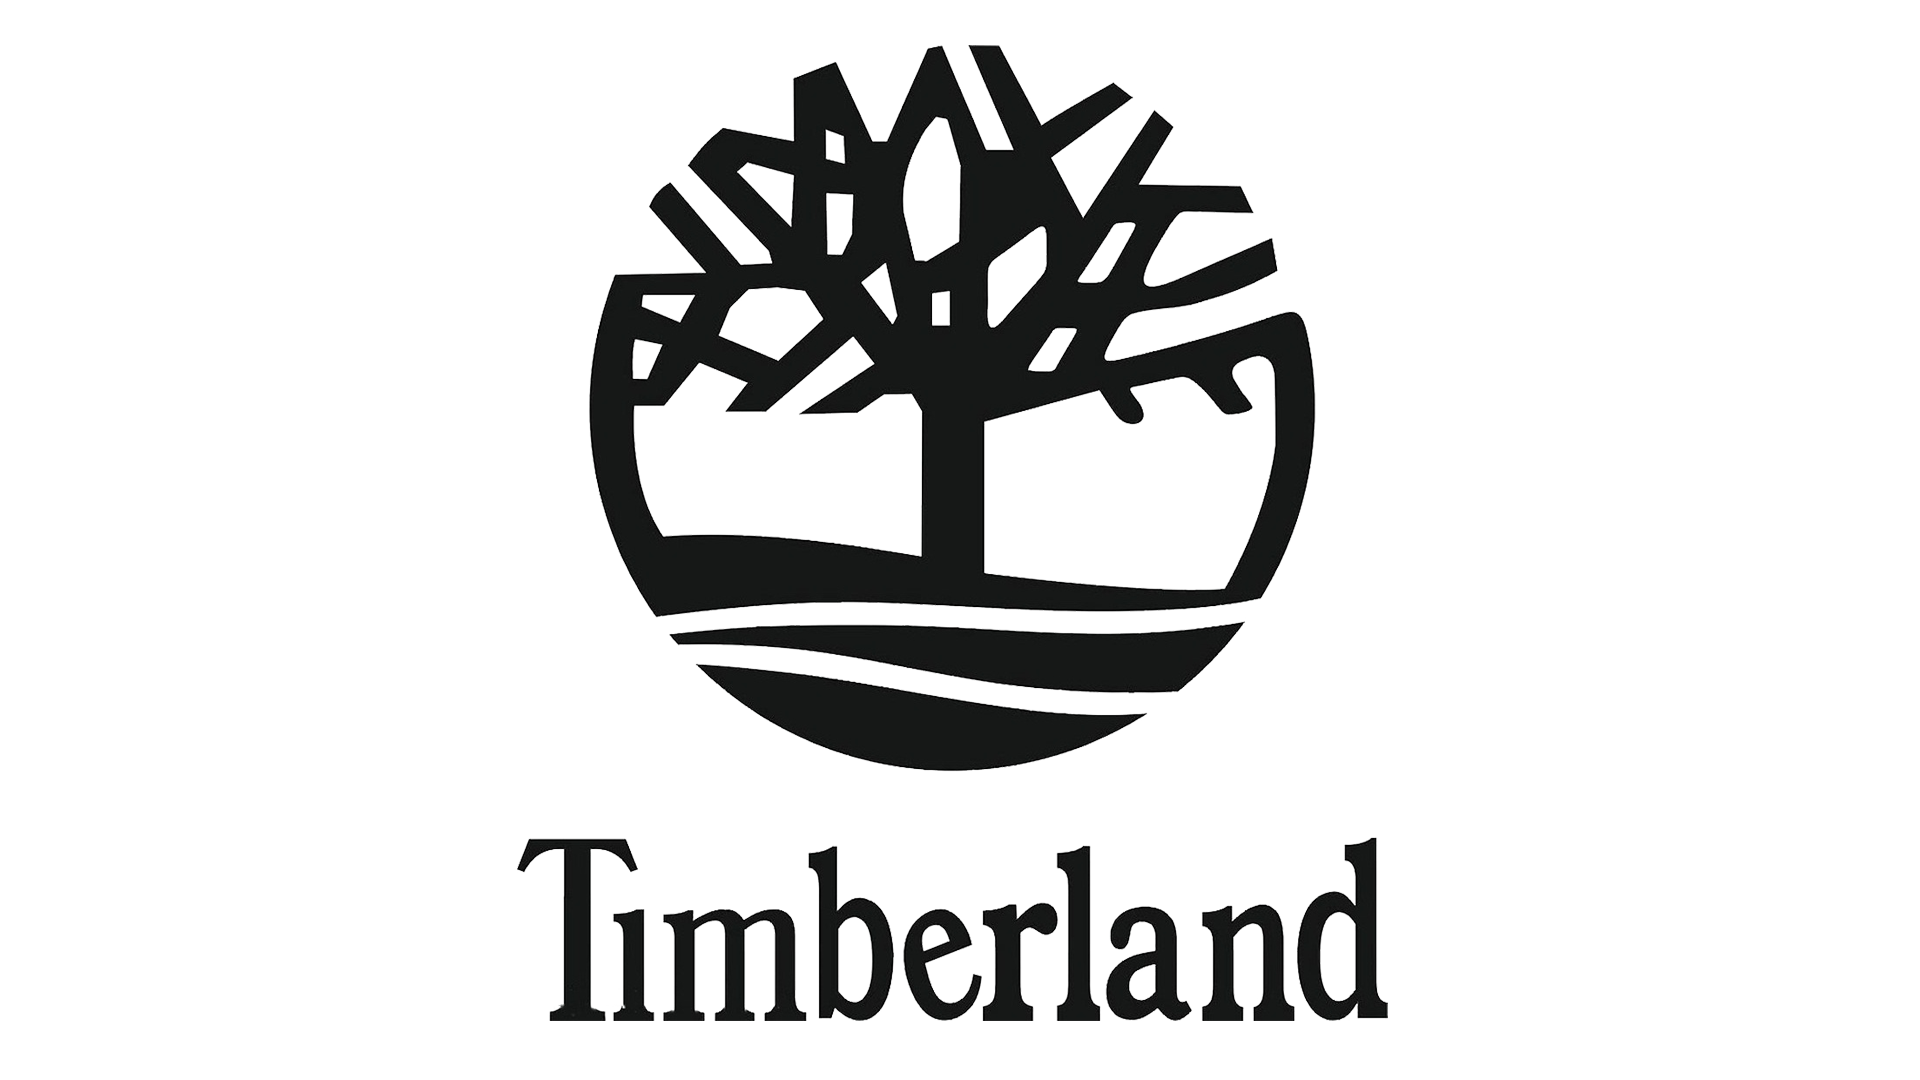 Timberland Logo Timberland Symbol Meaning History And Evolution